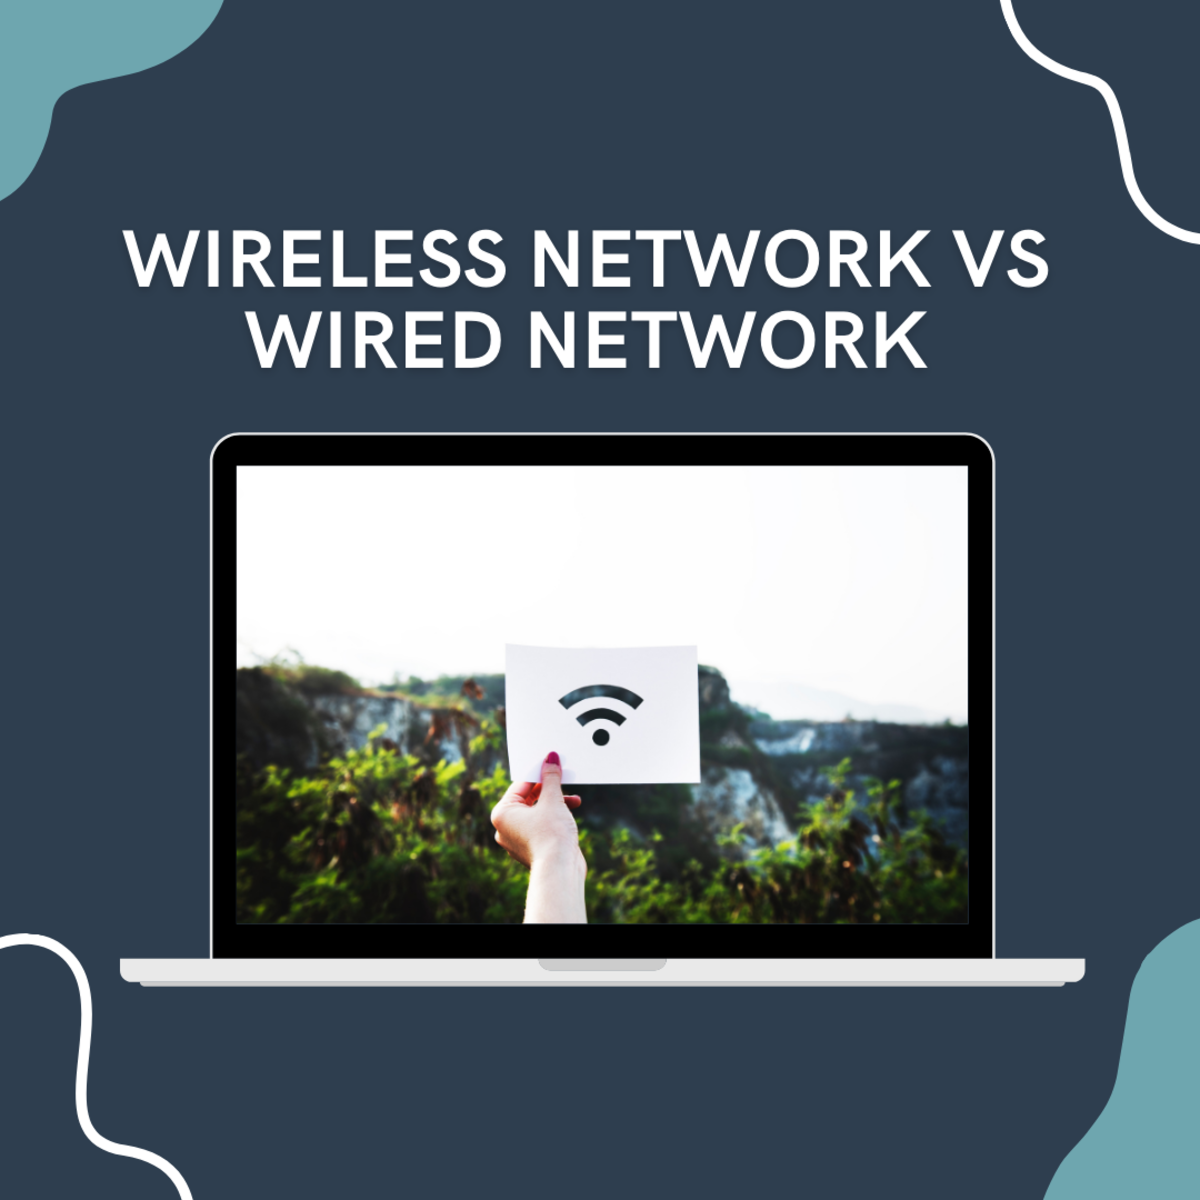 Wireless Network vs Wired Network: Advantages and Disadvantages